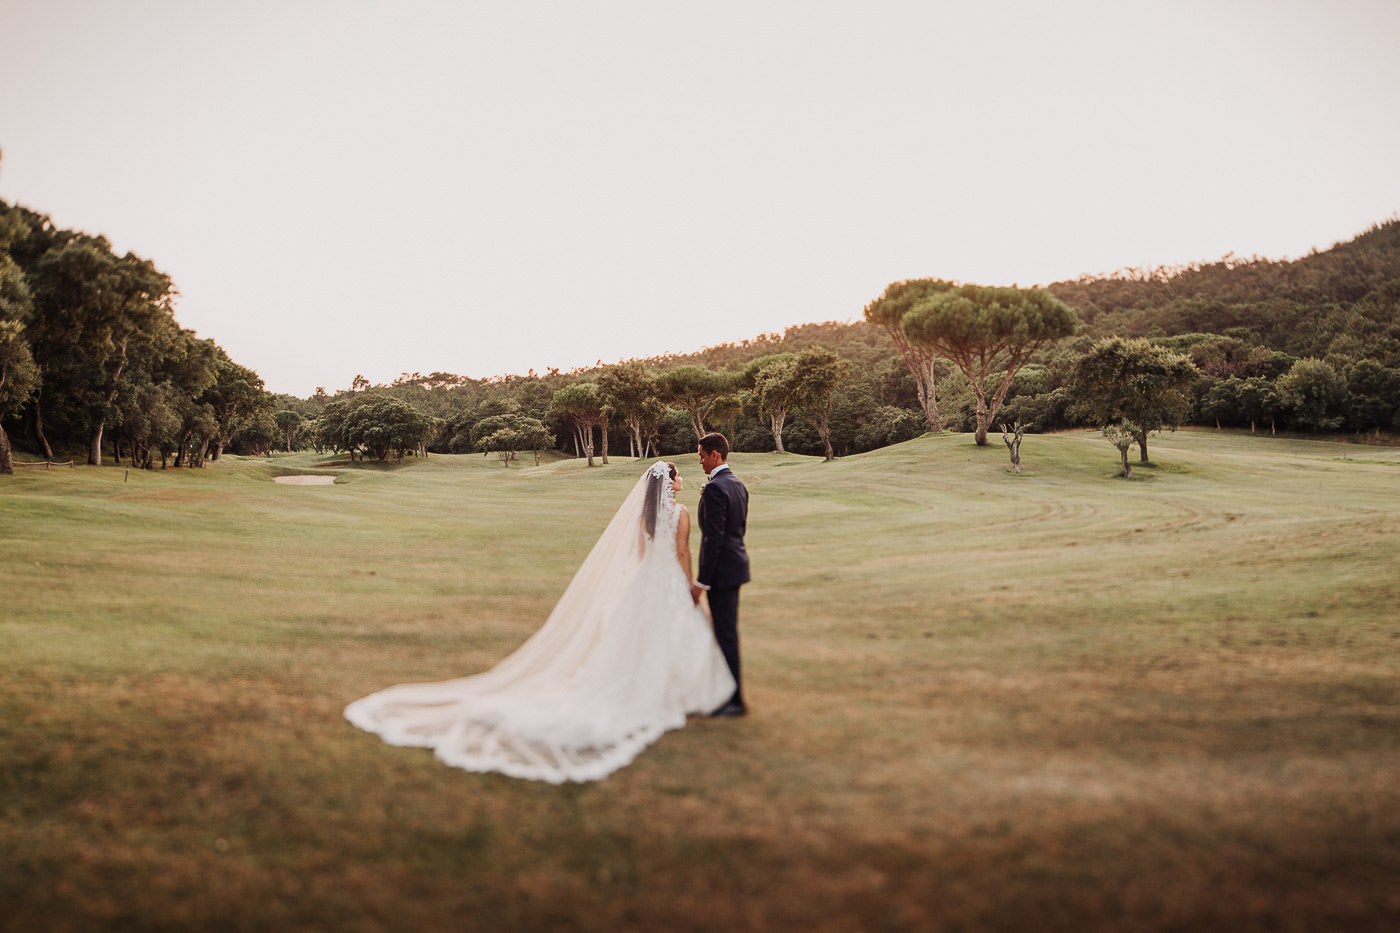 bride-groom_penha-longa-resort_sintra_arabic-wedding_sunset_documentary-wedding-photography